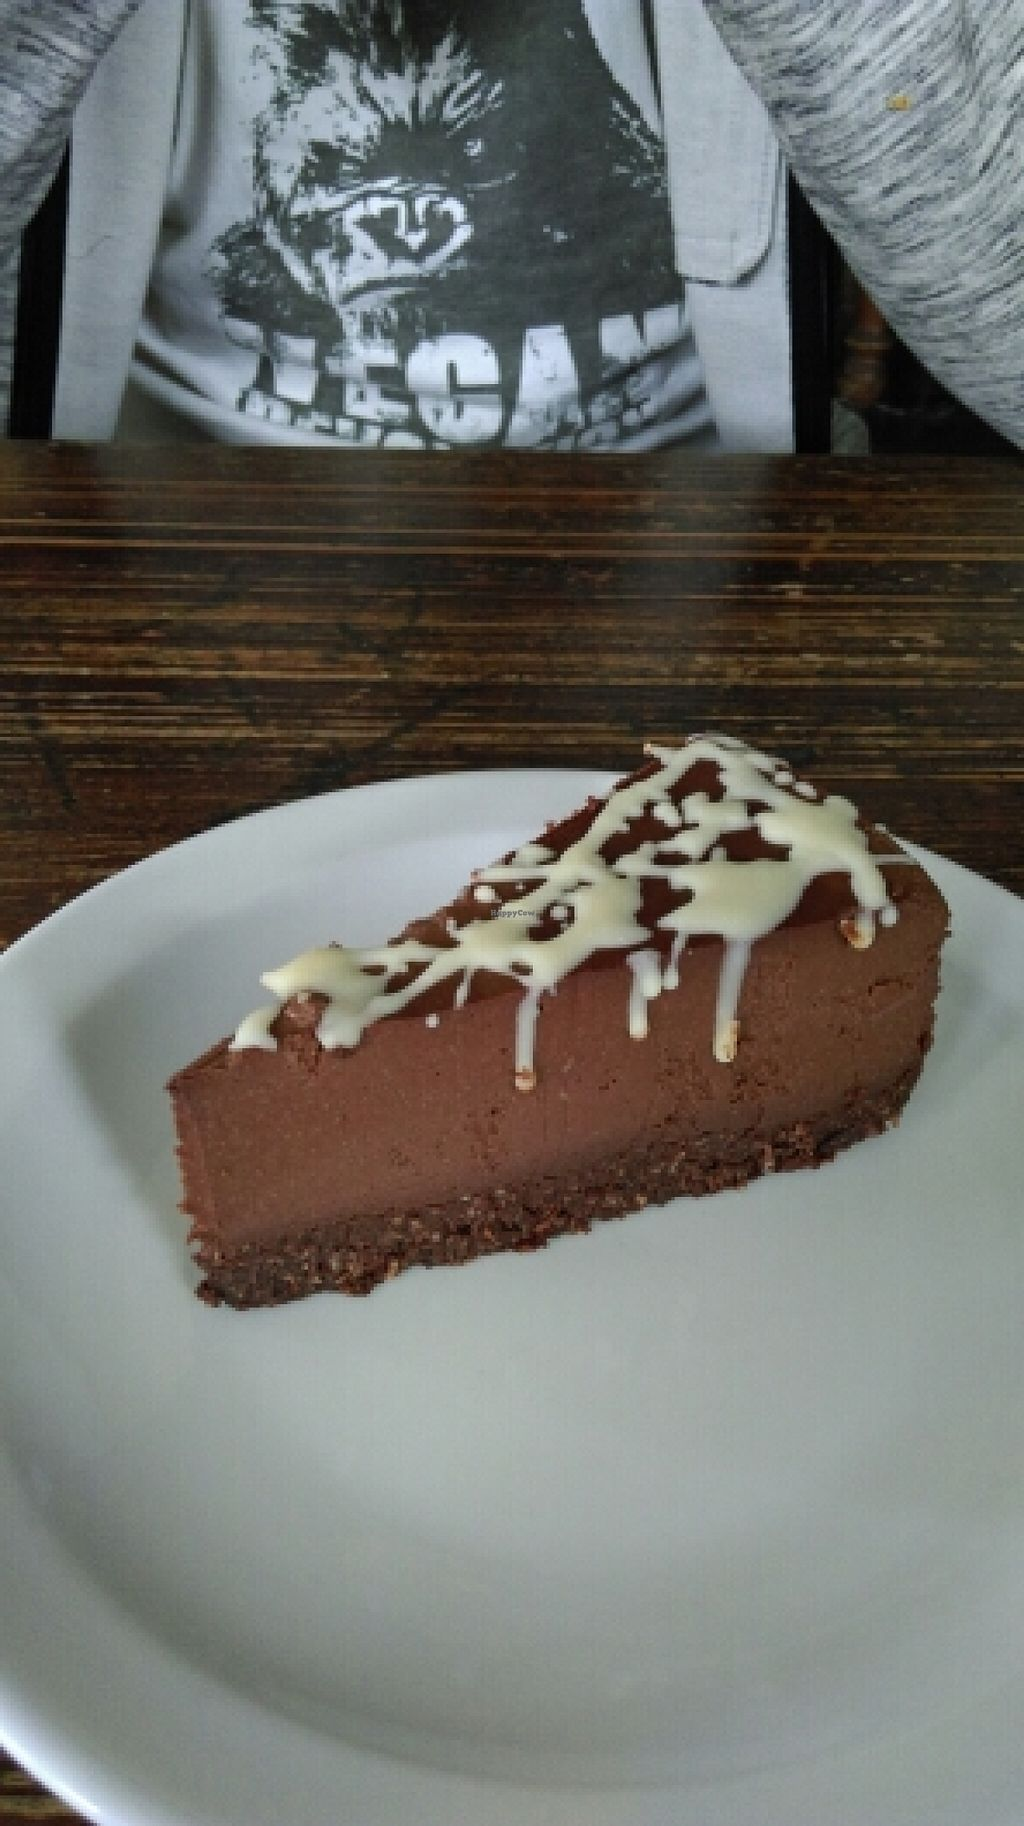 """Photo of Royal Sovereign Pub  by <a href=""""/members/profile/Melissaj1990"""">Melissaj1990</a> <br/>gluten free chocolate cake  <br/> June 21, 2016  - <a href='/contact/abuse/image/69523/155368'>Report</a>"""